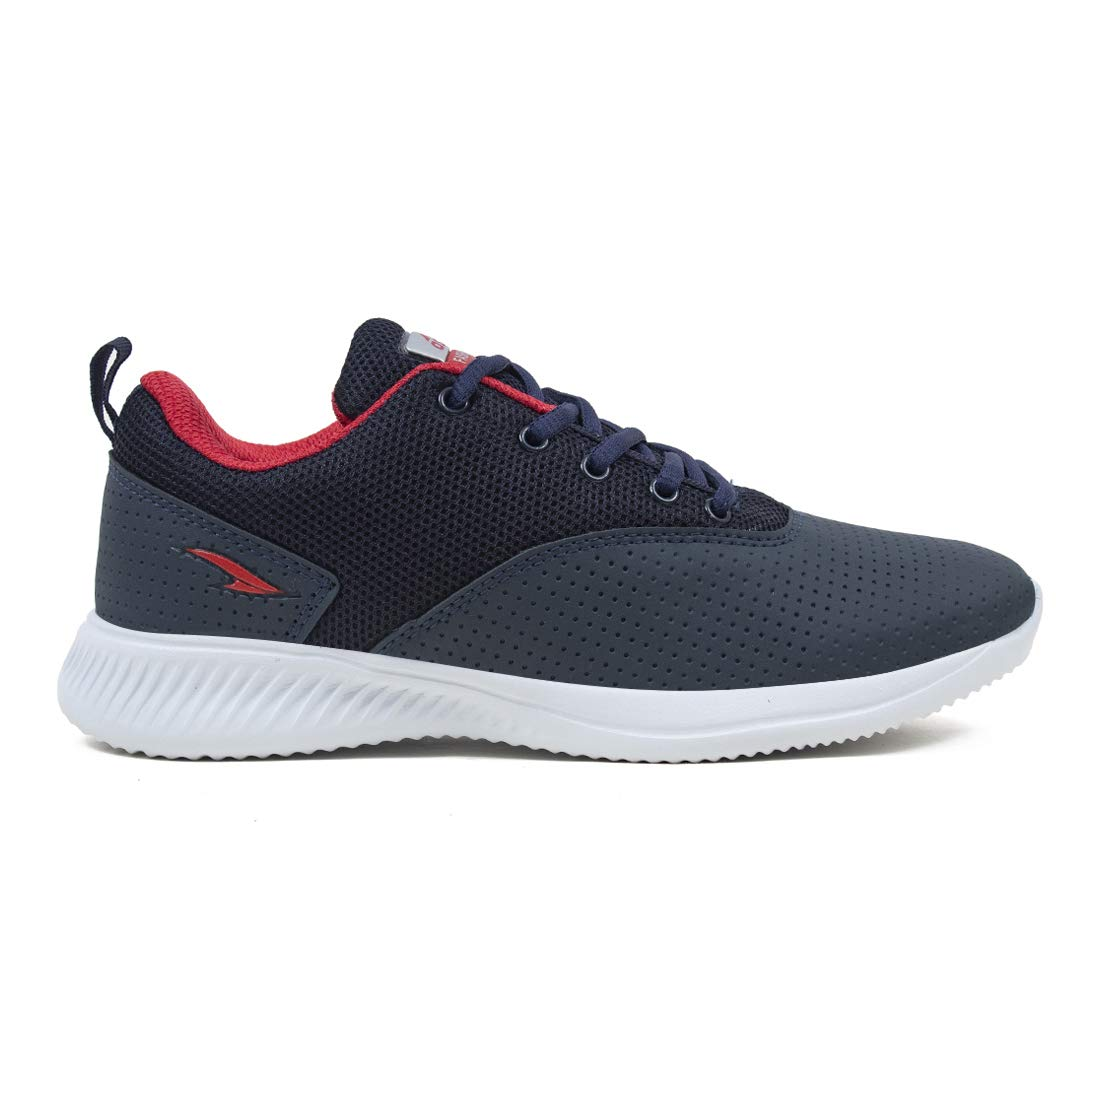 ASIAN Men's Bouncer-05 Sports Latest Casual Sneakers,Lace up Lightweight Shoes for Running, Walking, Gym MRP 999/-